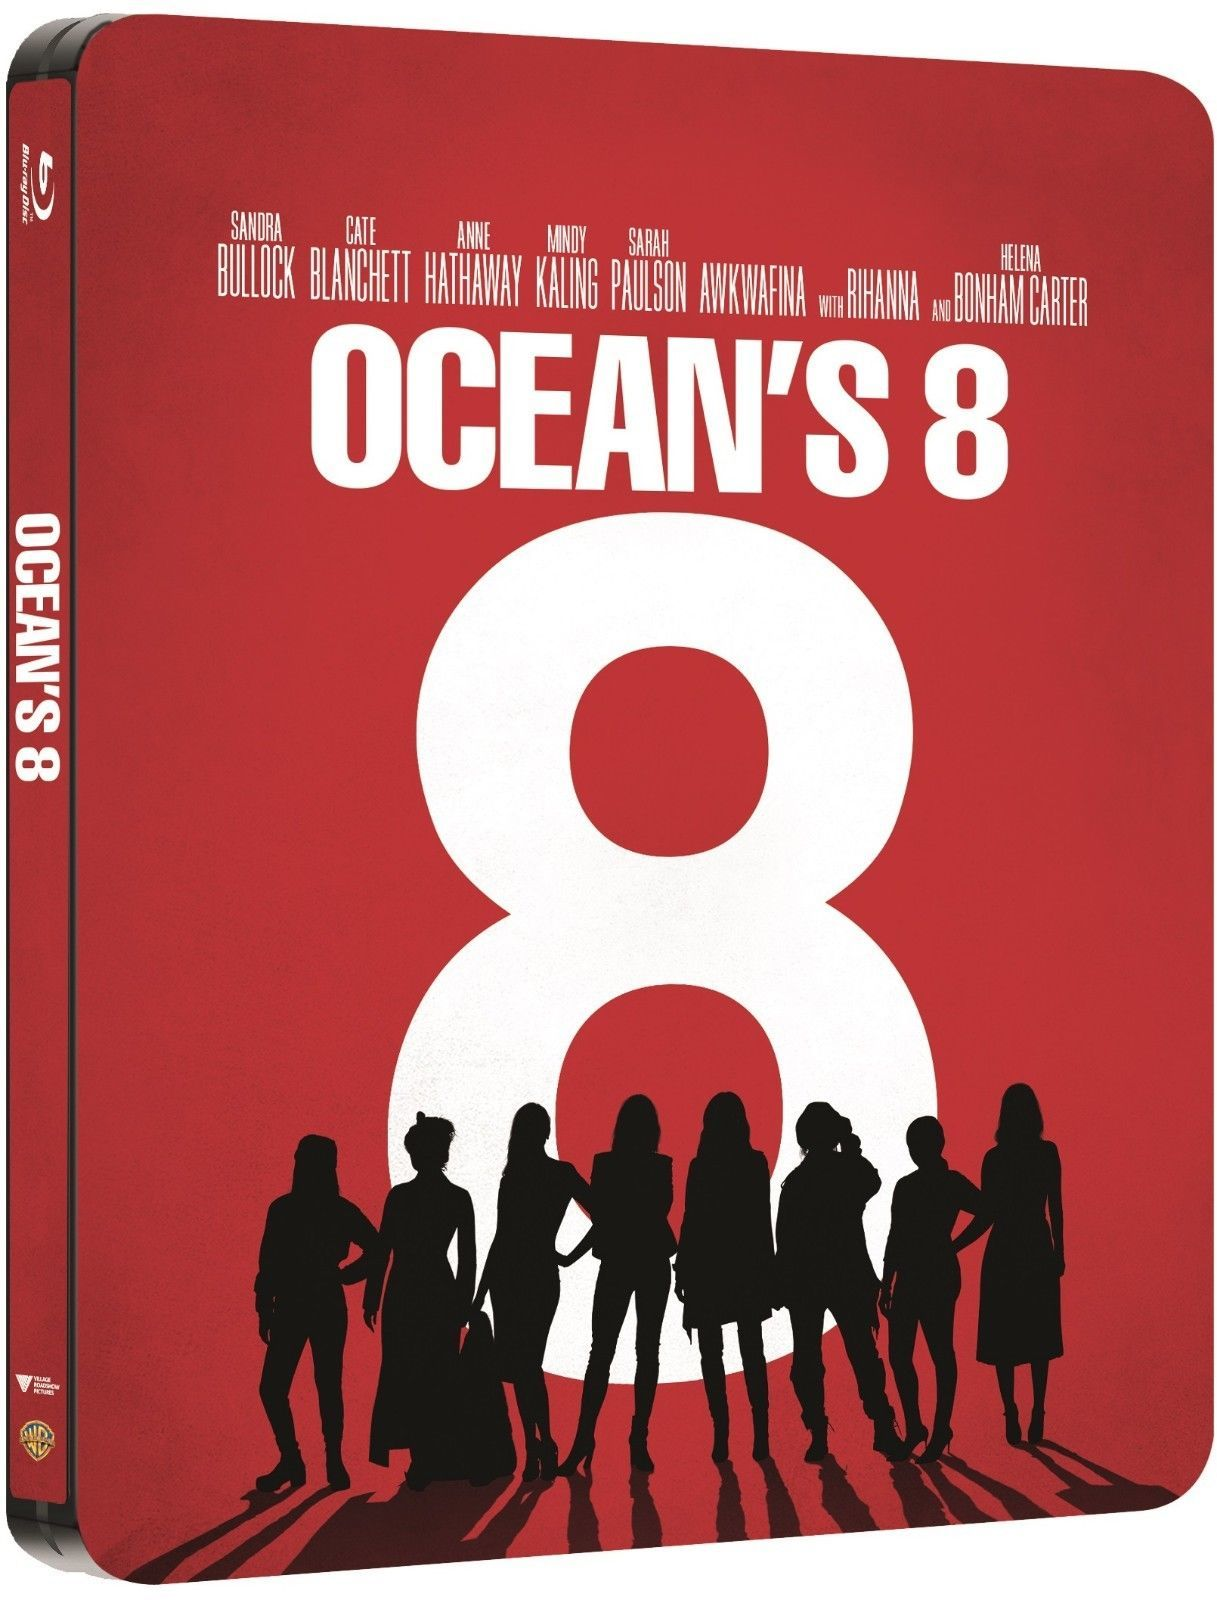 Oceans 8 (SteelBook)(2018) 4K Ultra HD Blu-ray